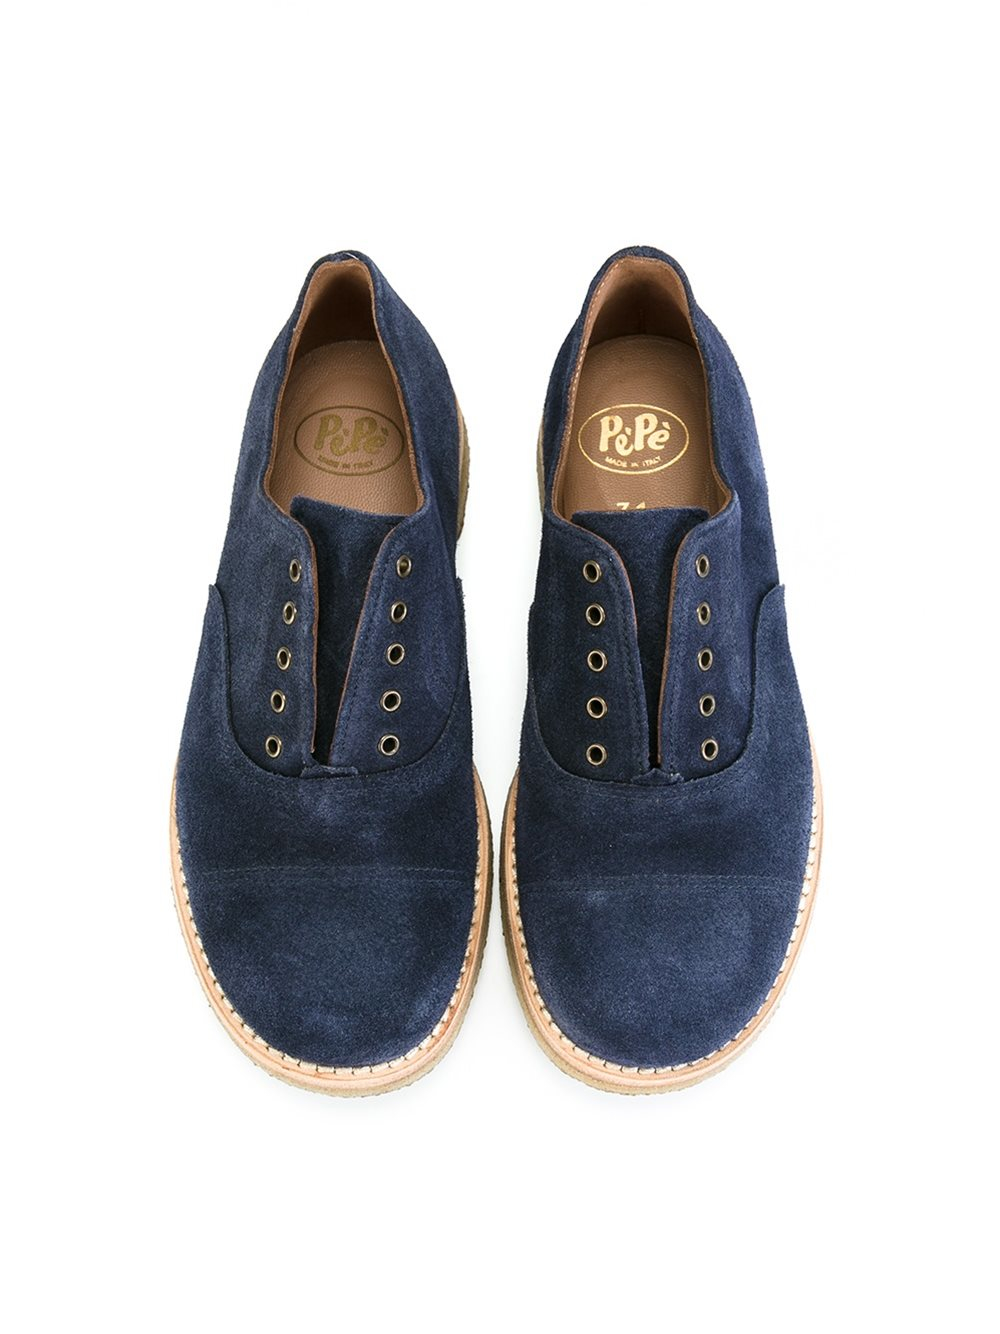 lyst pepe laceless oxford shoes in blue for